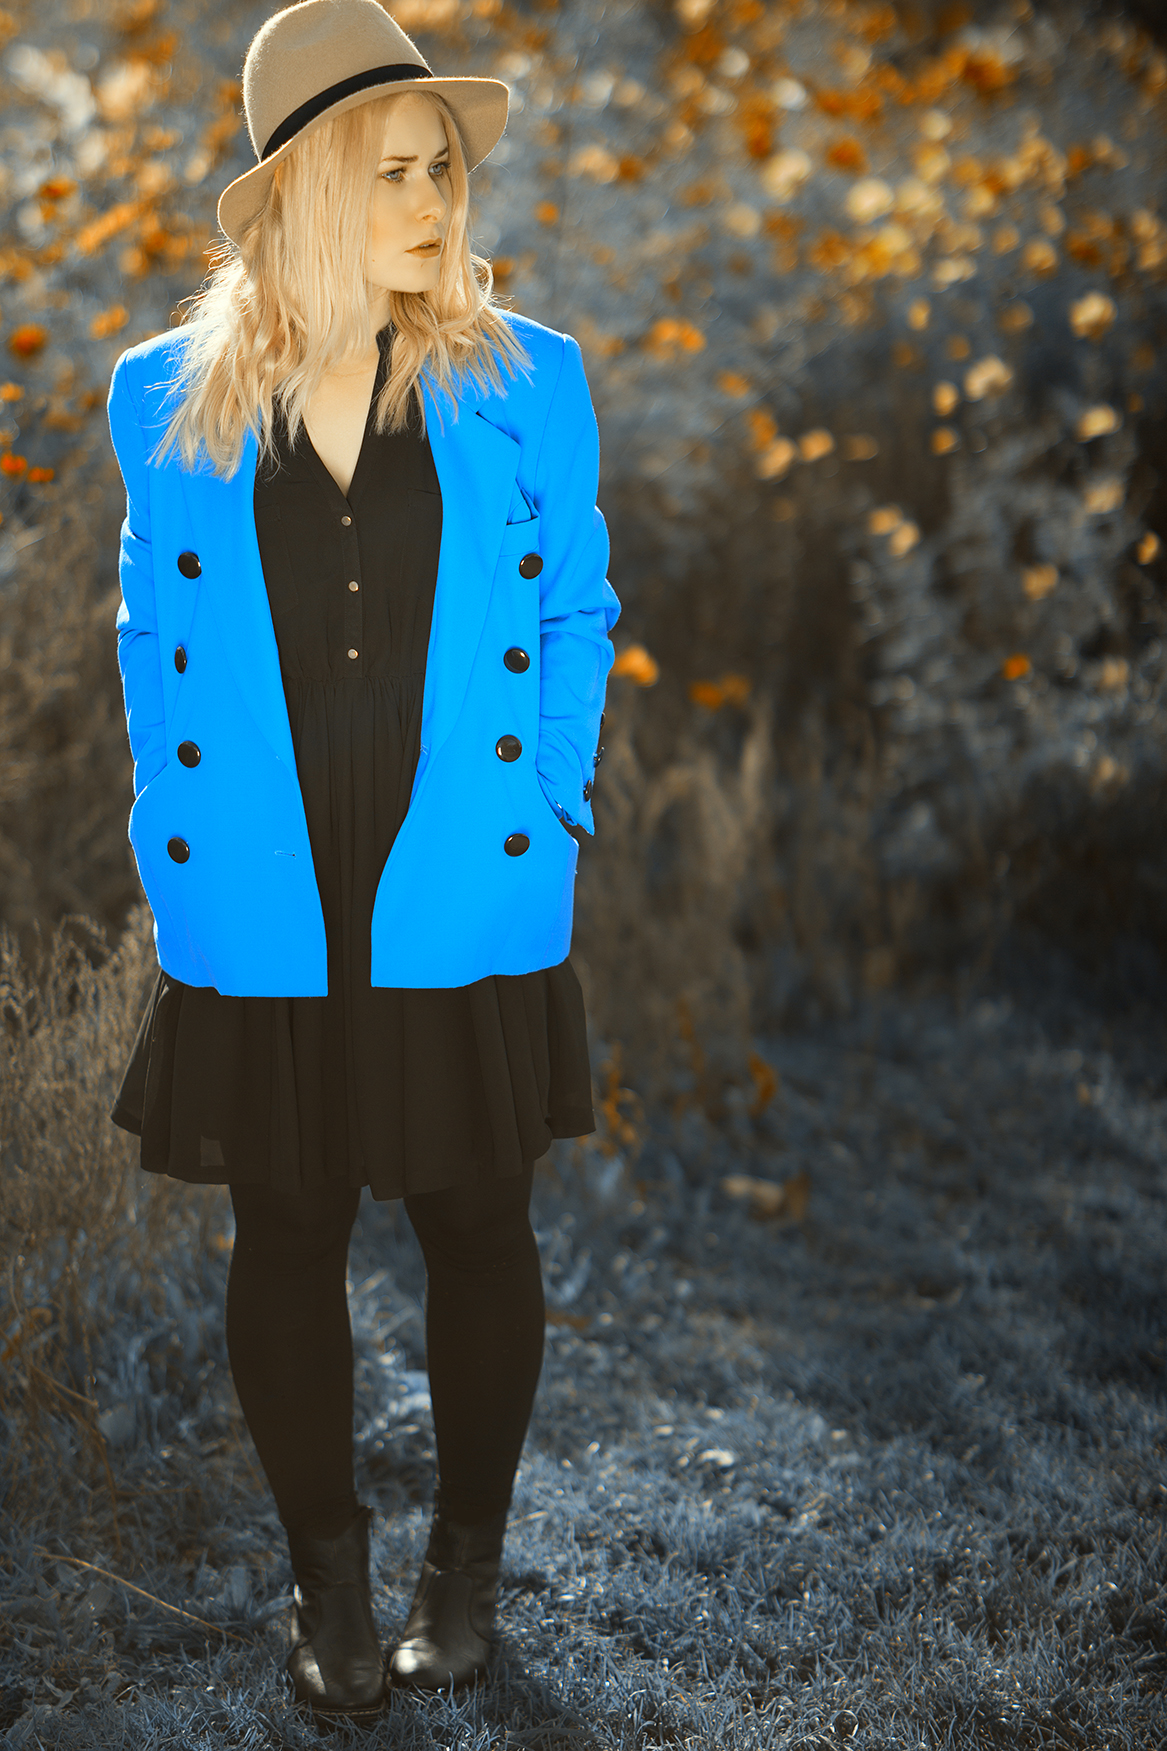 Royal blauer Blazer Herbst Outfit